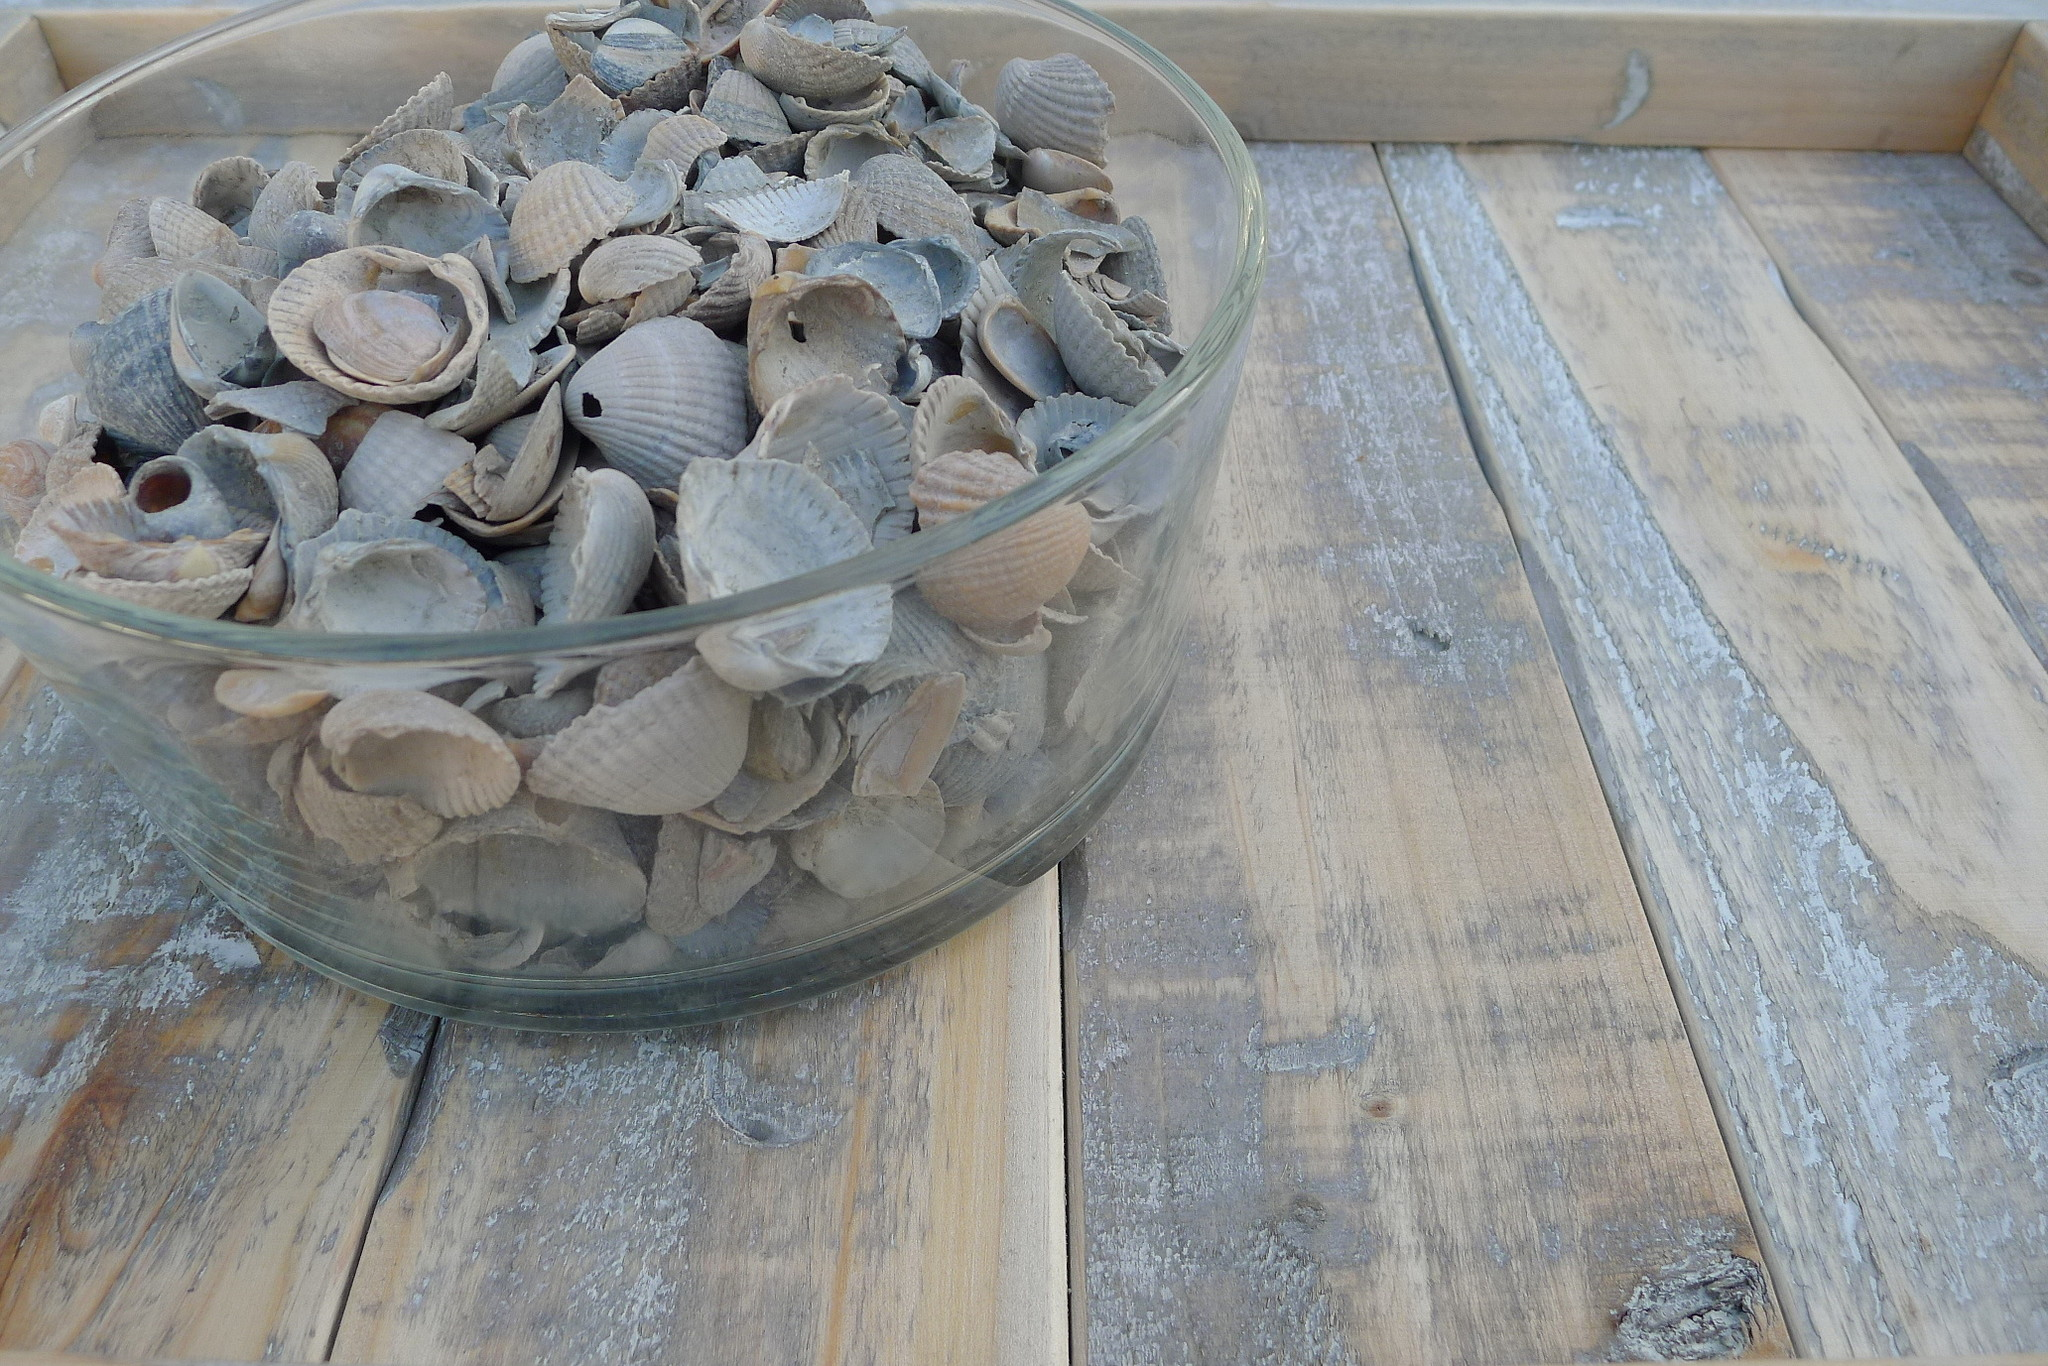 home dec shells dutch mix 15 kg-3